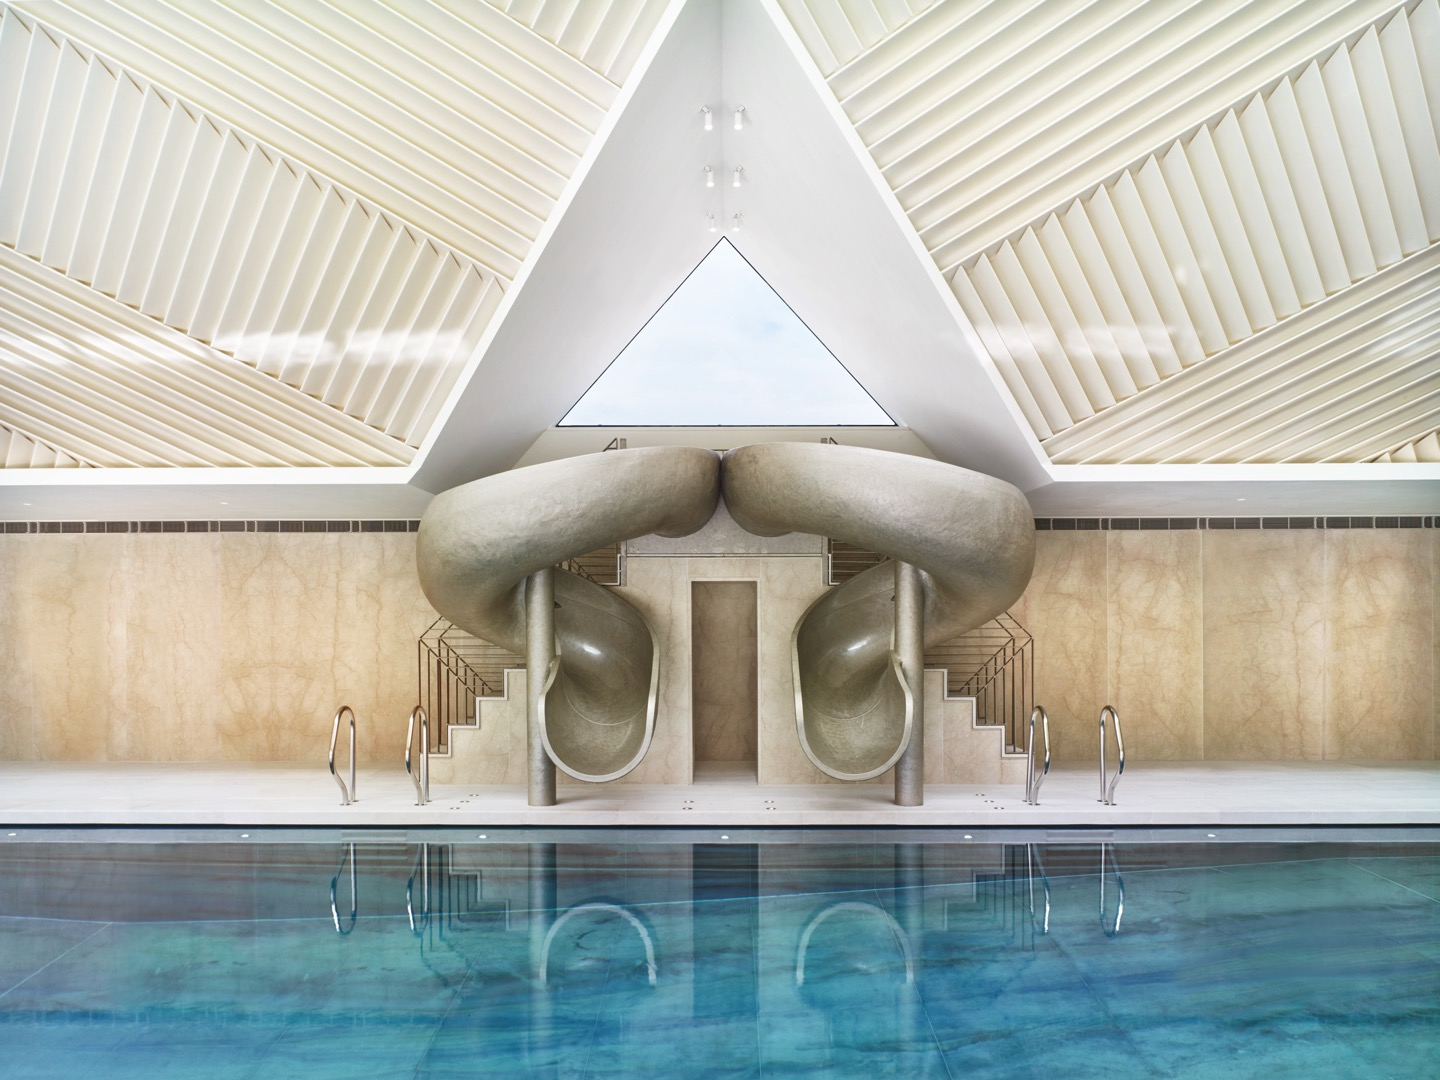 Double pool slide by Splinterworks in spectacularly designed pool pavilion.